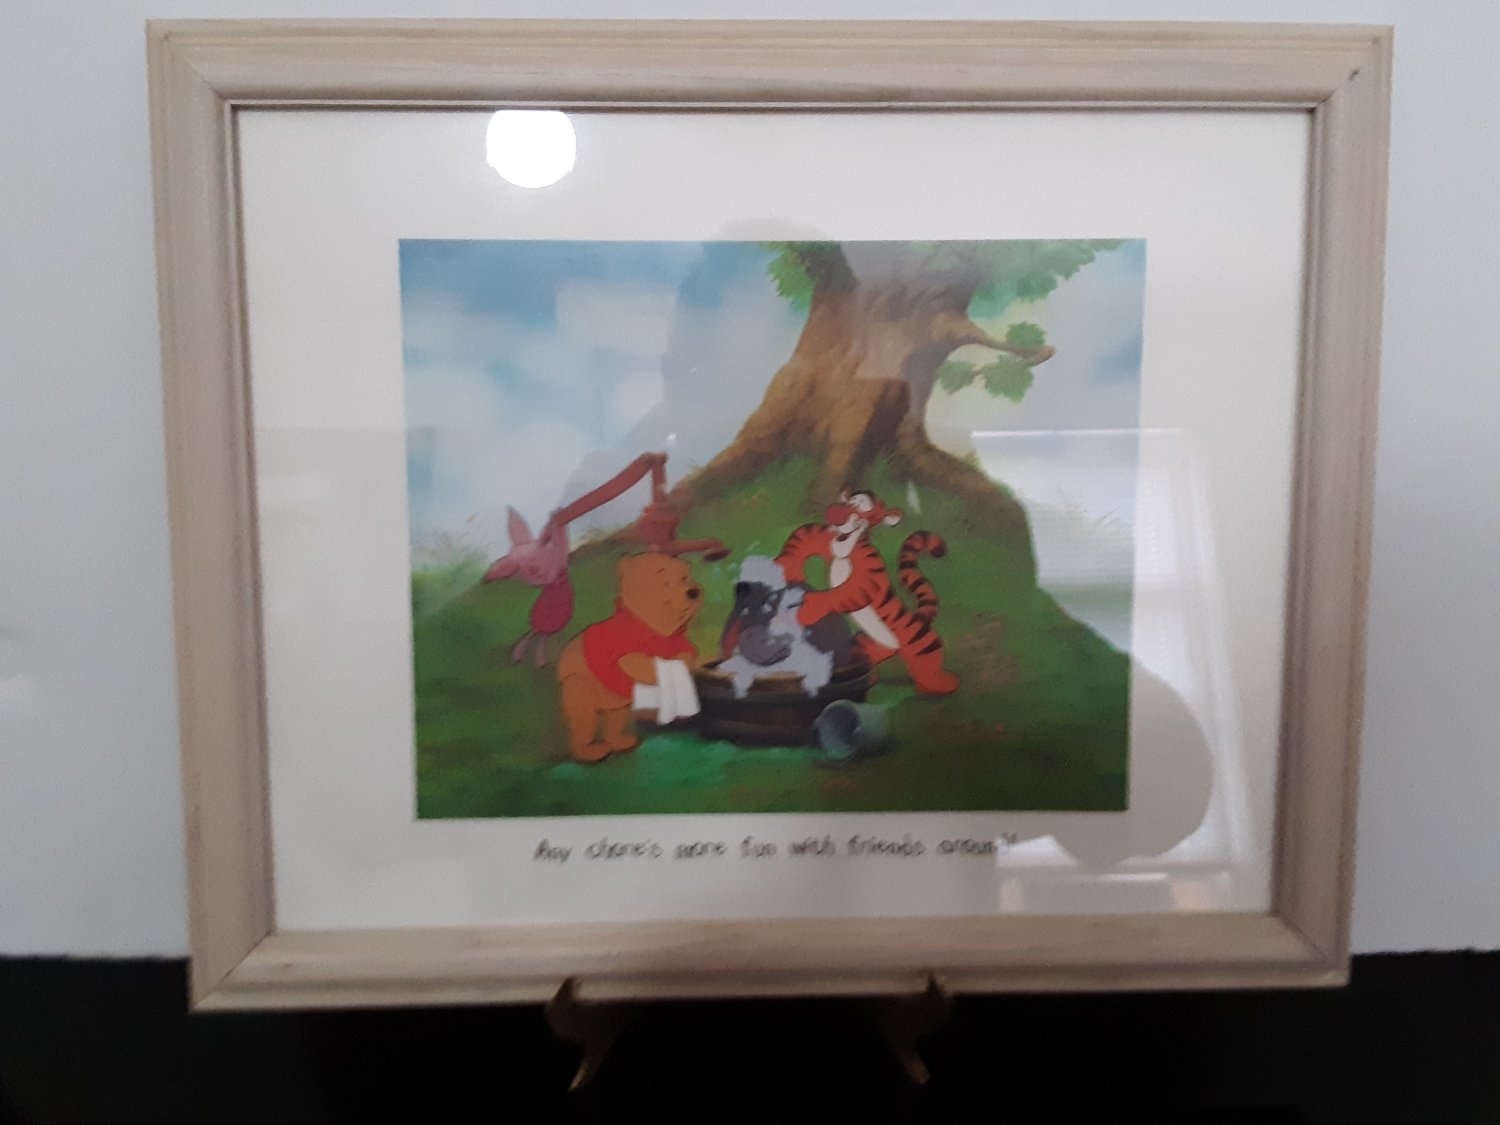 1997 - Winnie The Pooh & Friends - 11x14 Framed Lithograph